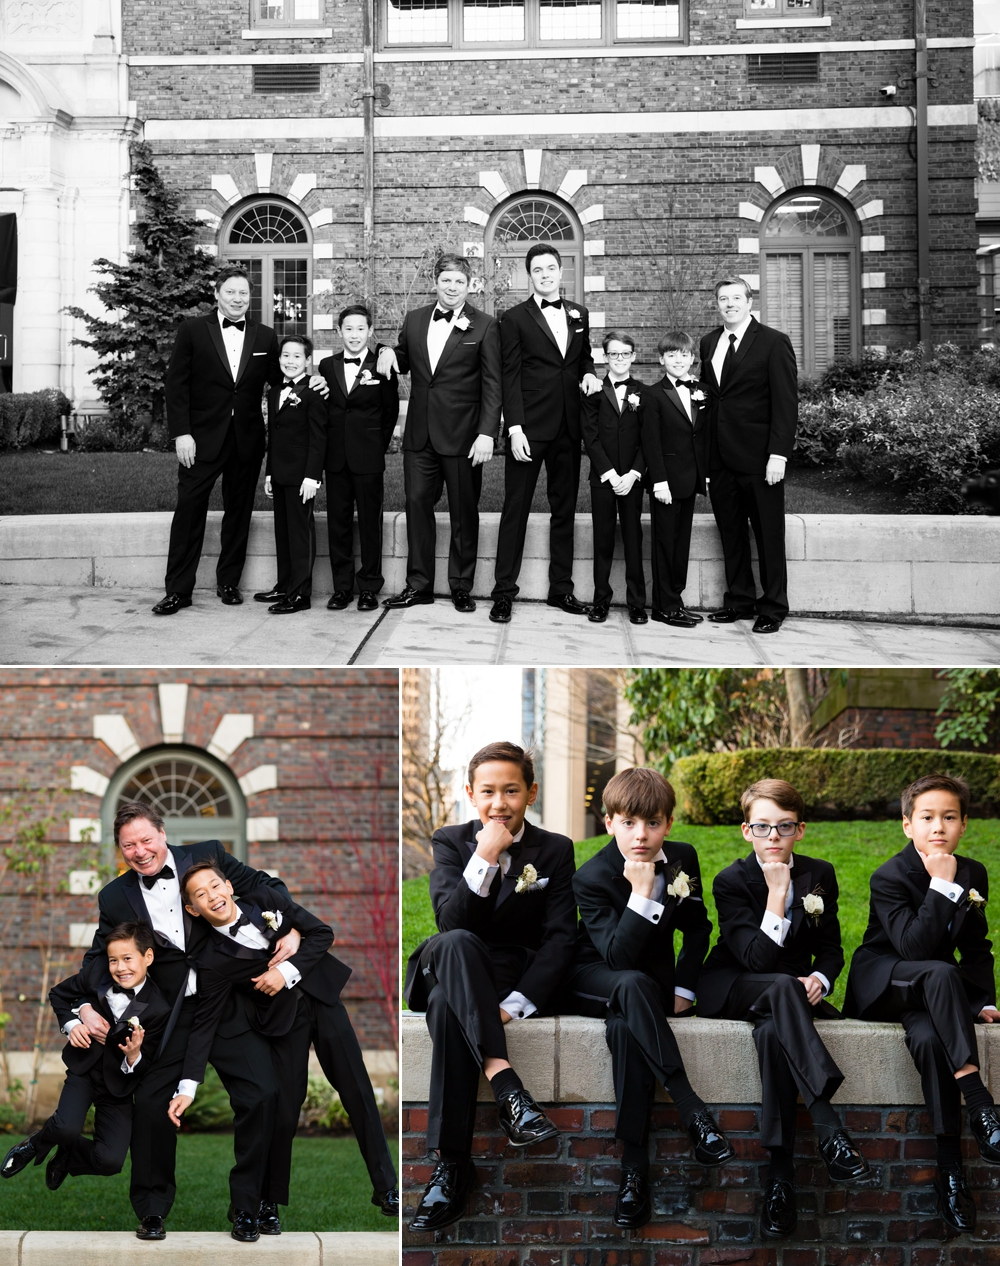 groom-with-groomsmen-and-sons